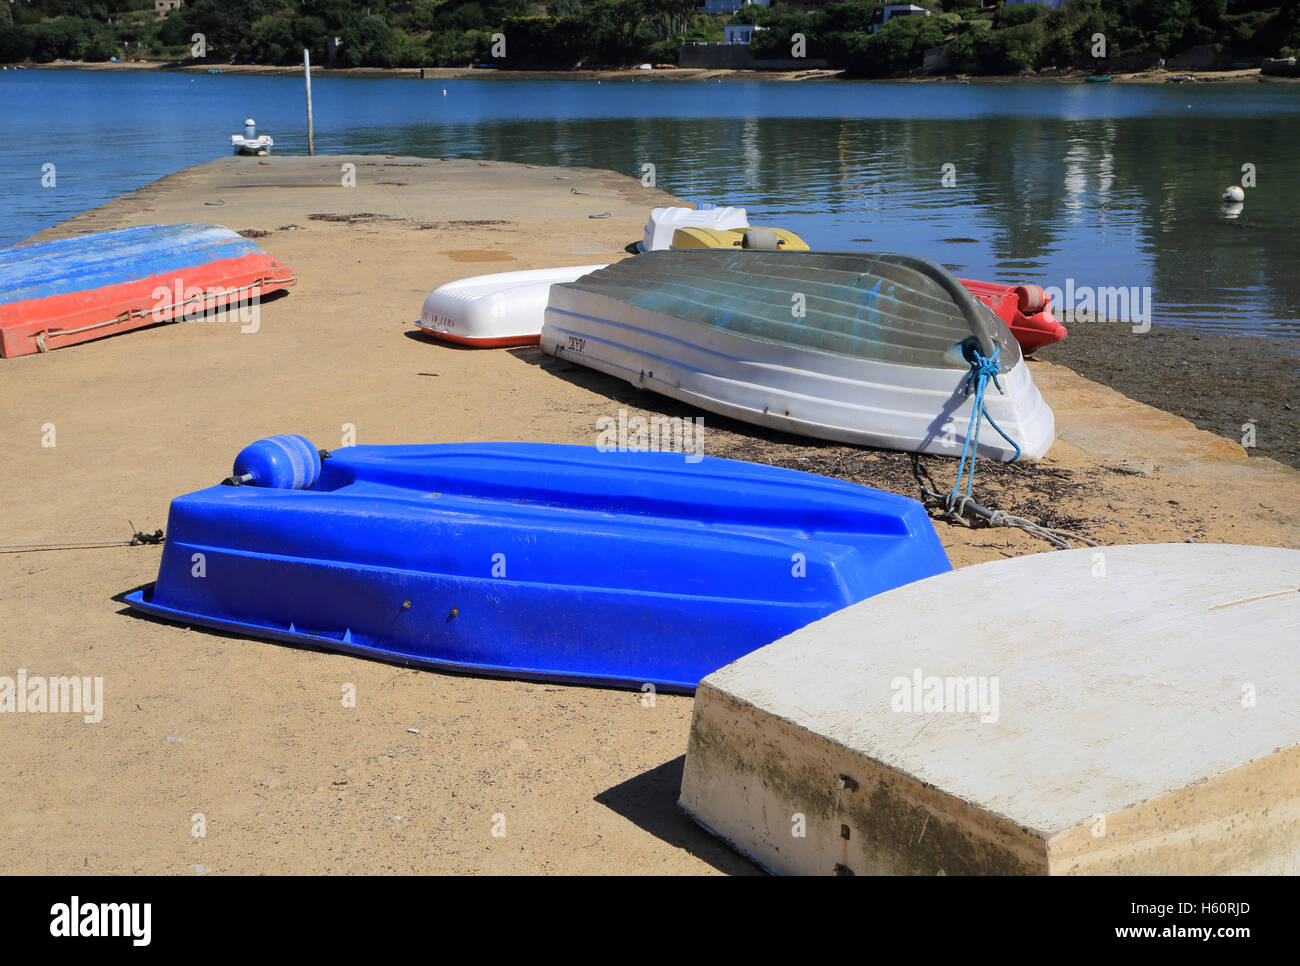 Upturned rowing boats on slipway at Rue Benoni Praud, Ile Aux Moines, Morbihan, Brittany, France - Stock Image